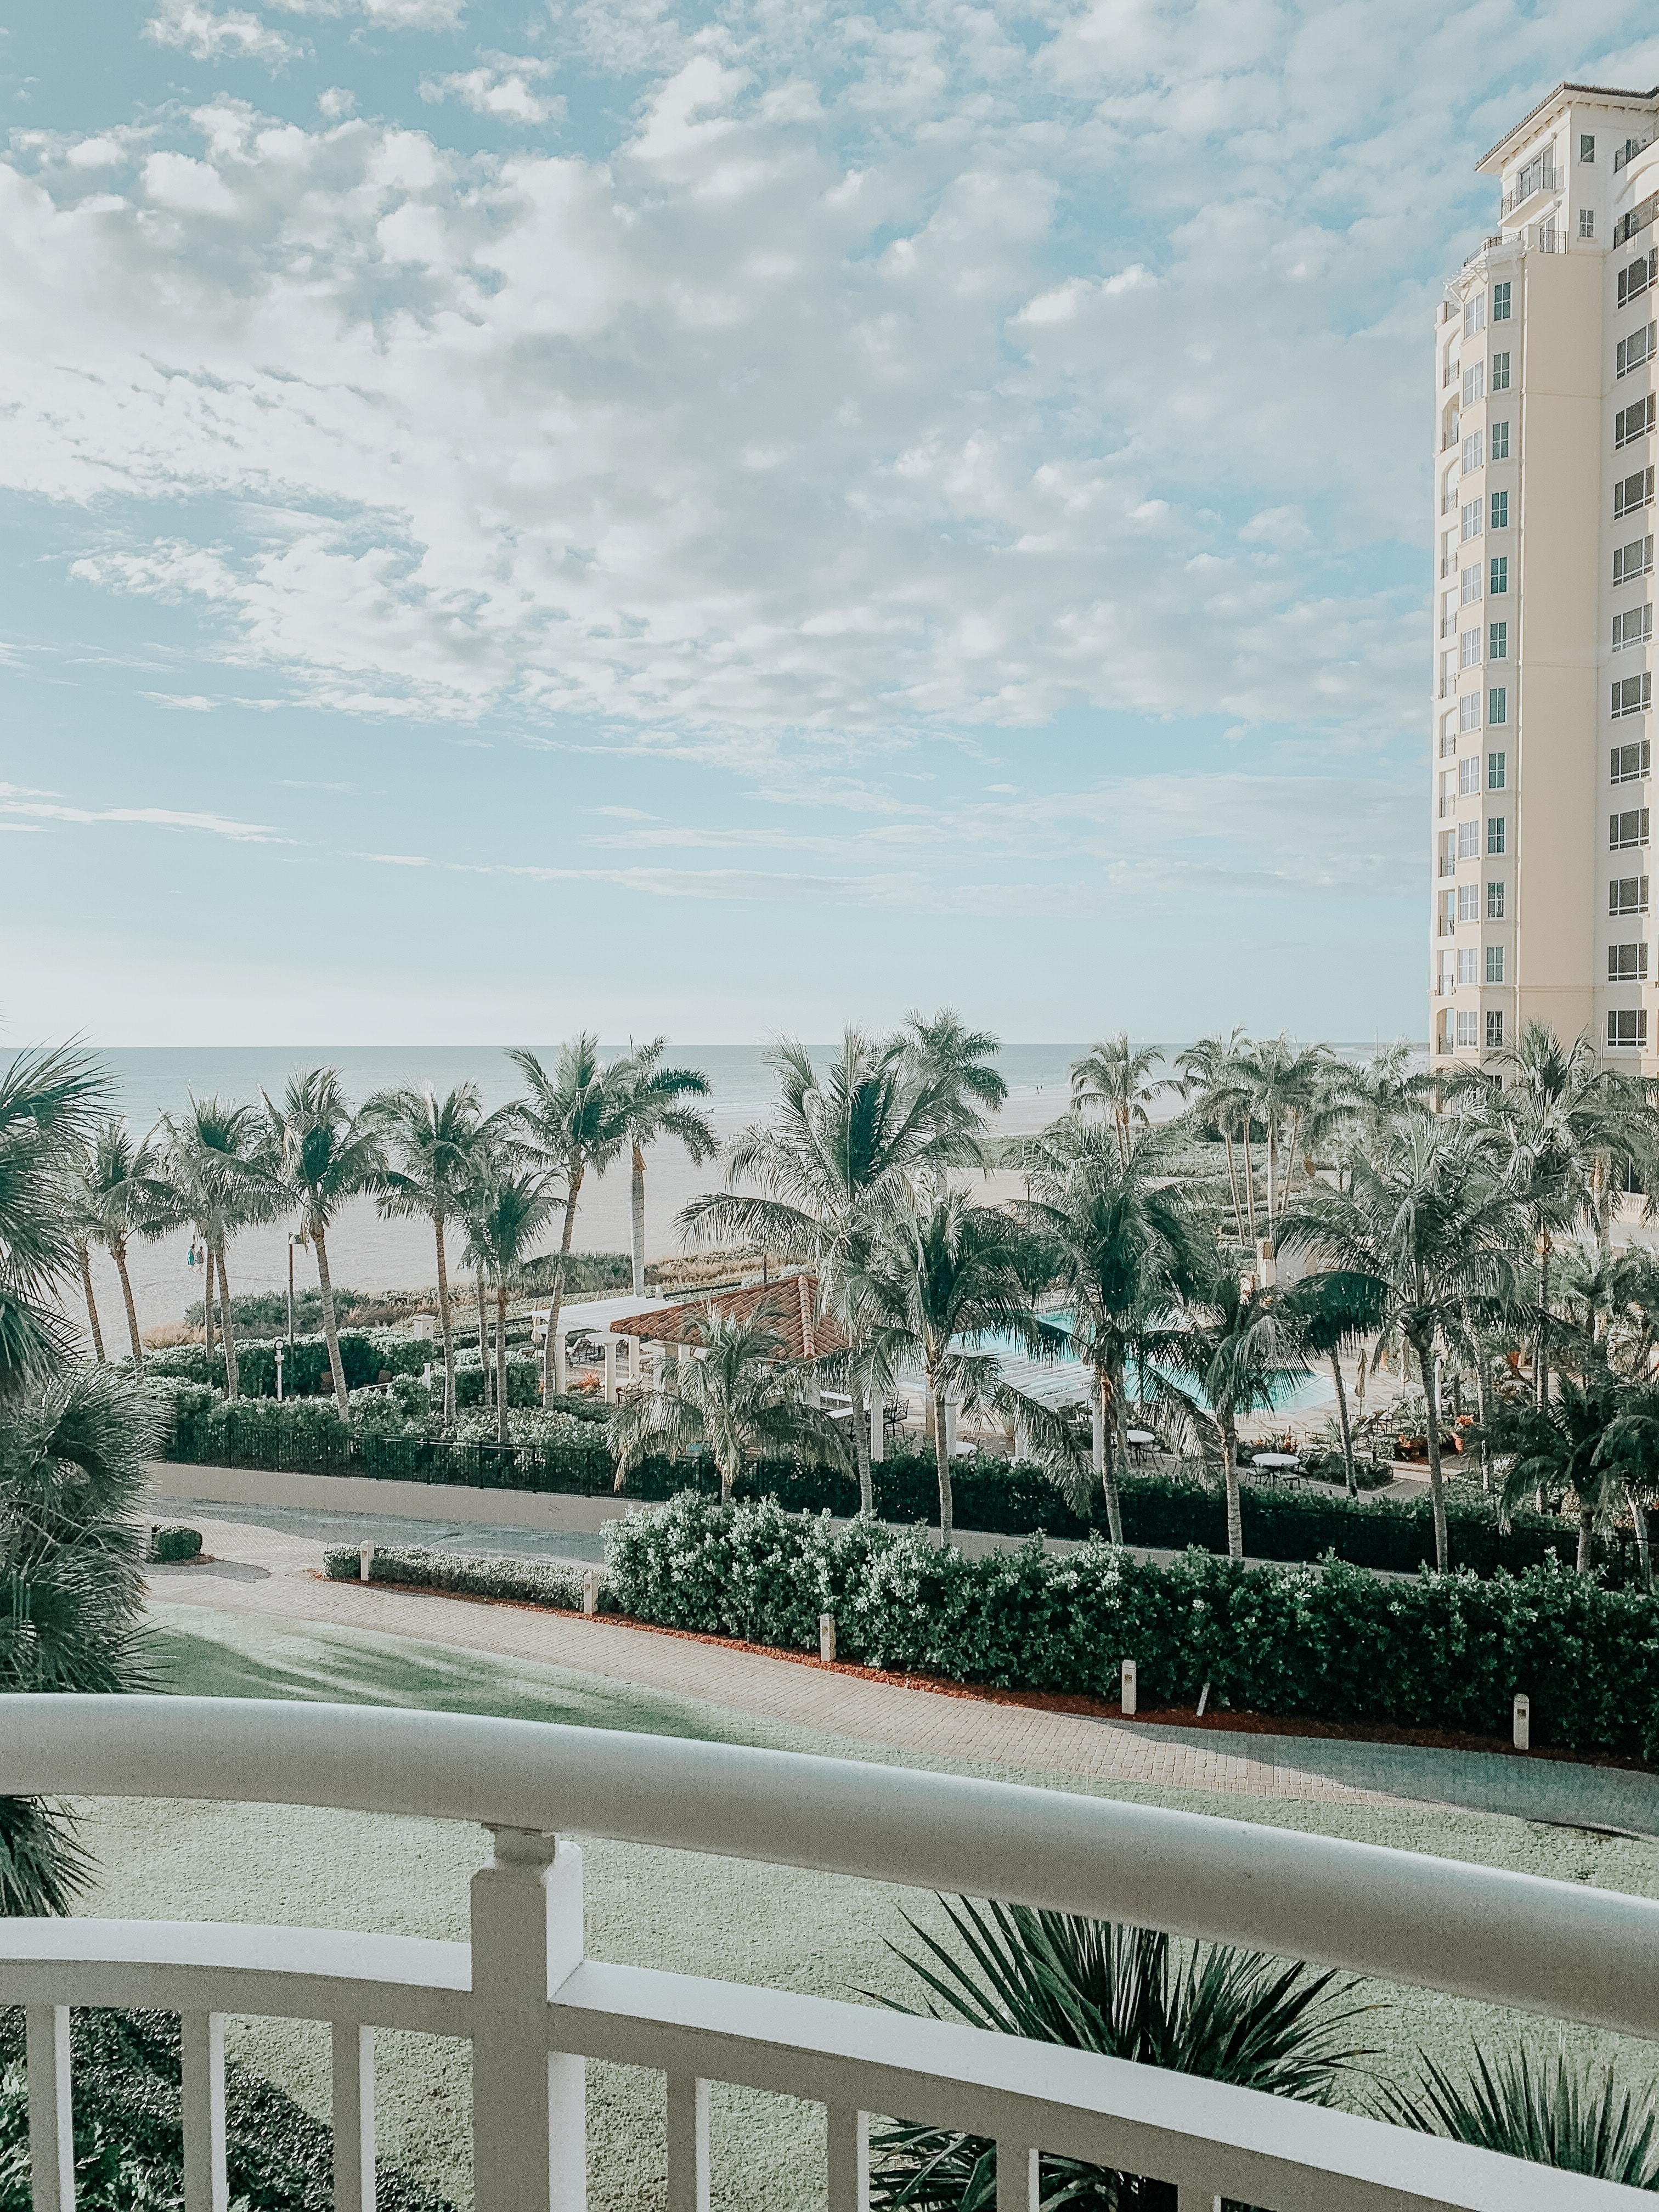 Welcome to Paradise: JW Marriott Marco Island Beach Resort